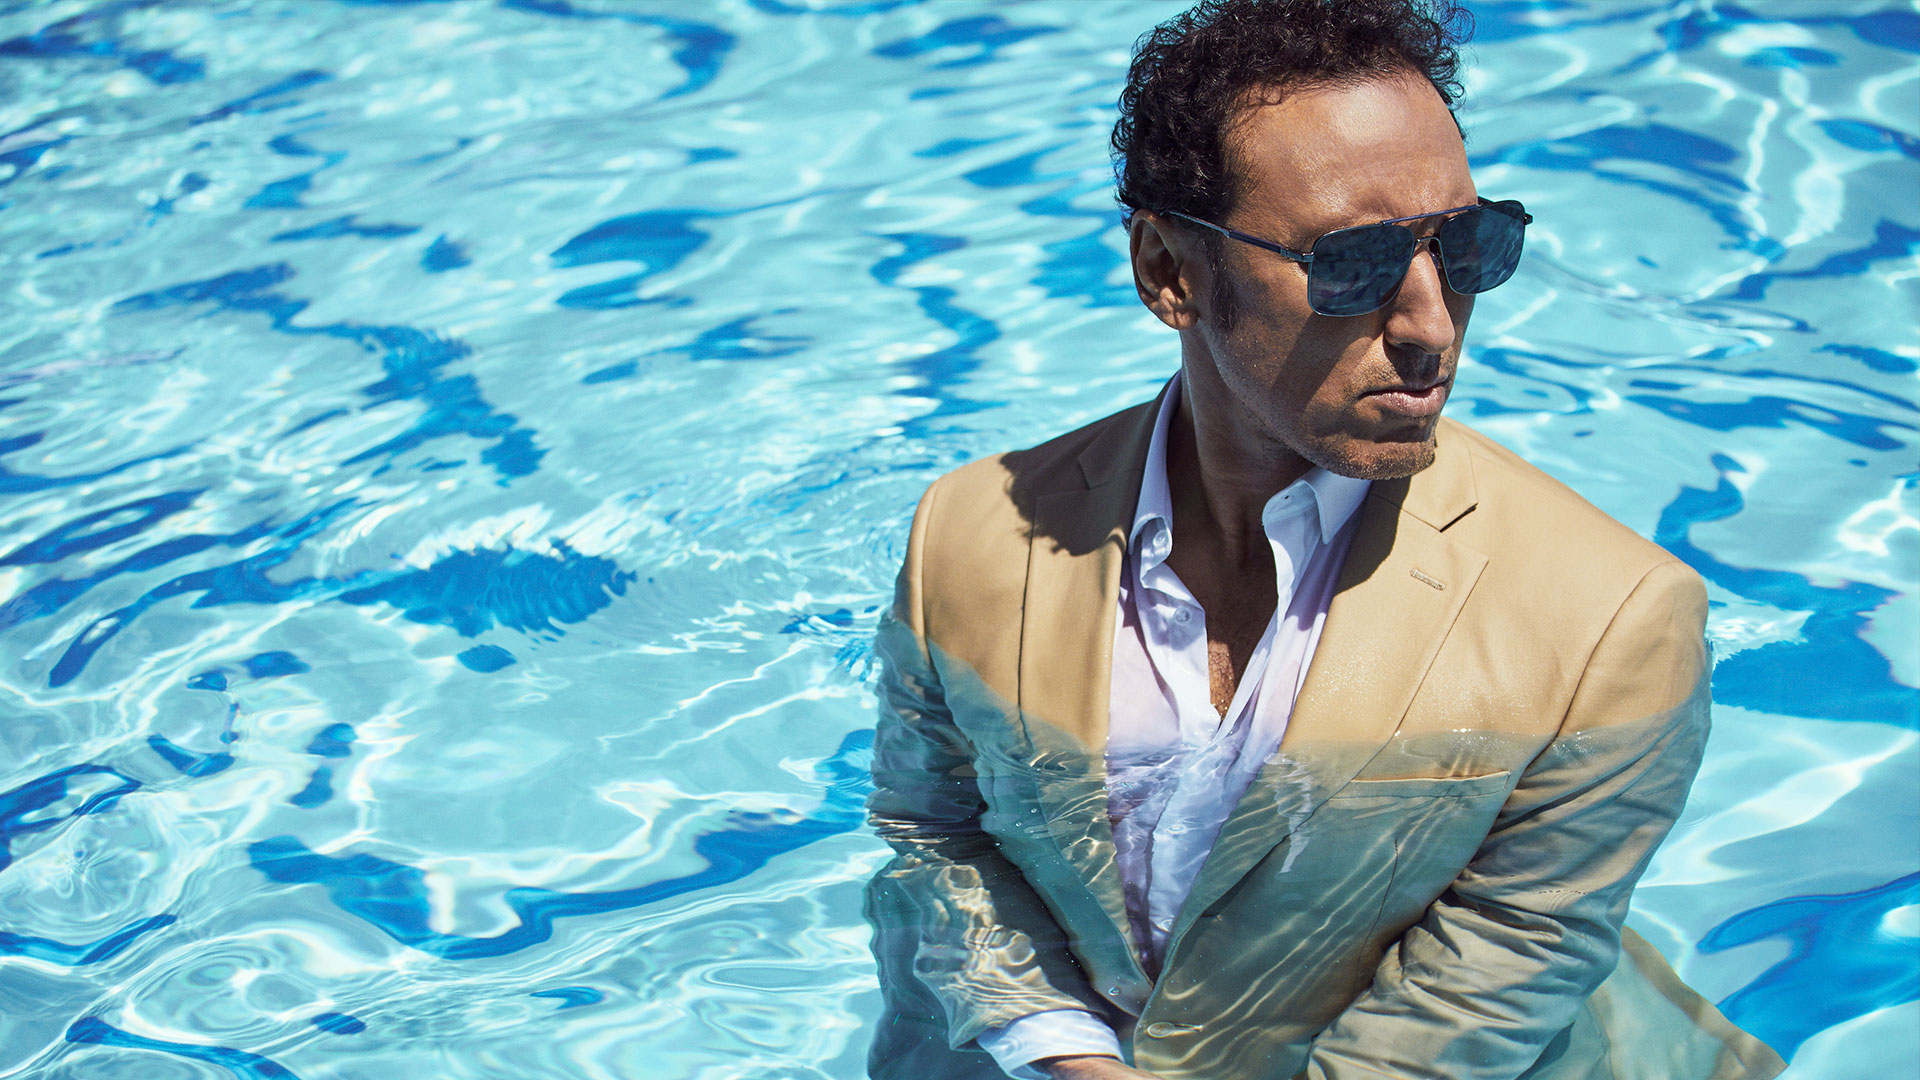 ​Aasif Mandvi takes time to reflect